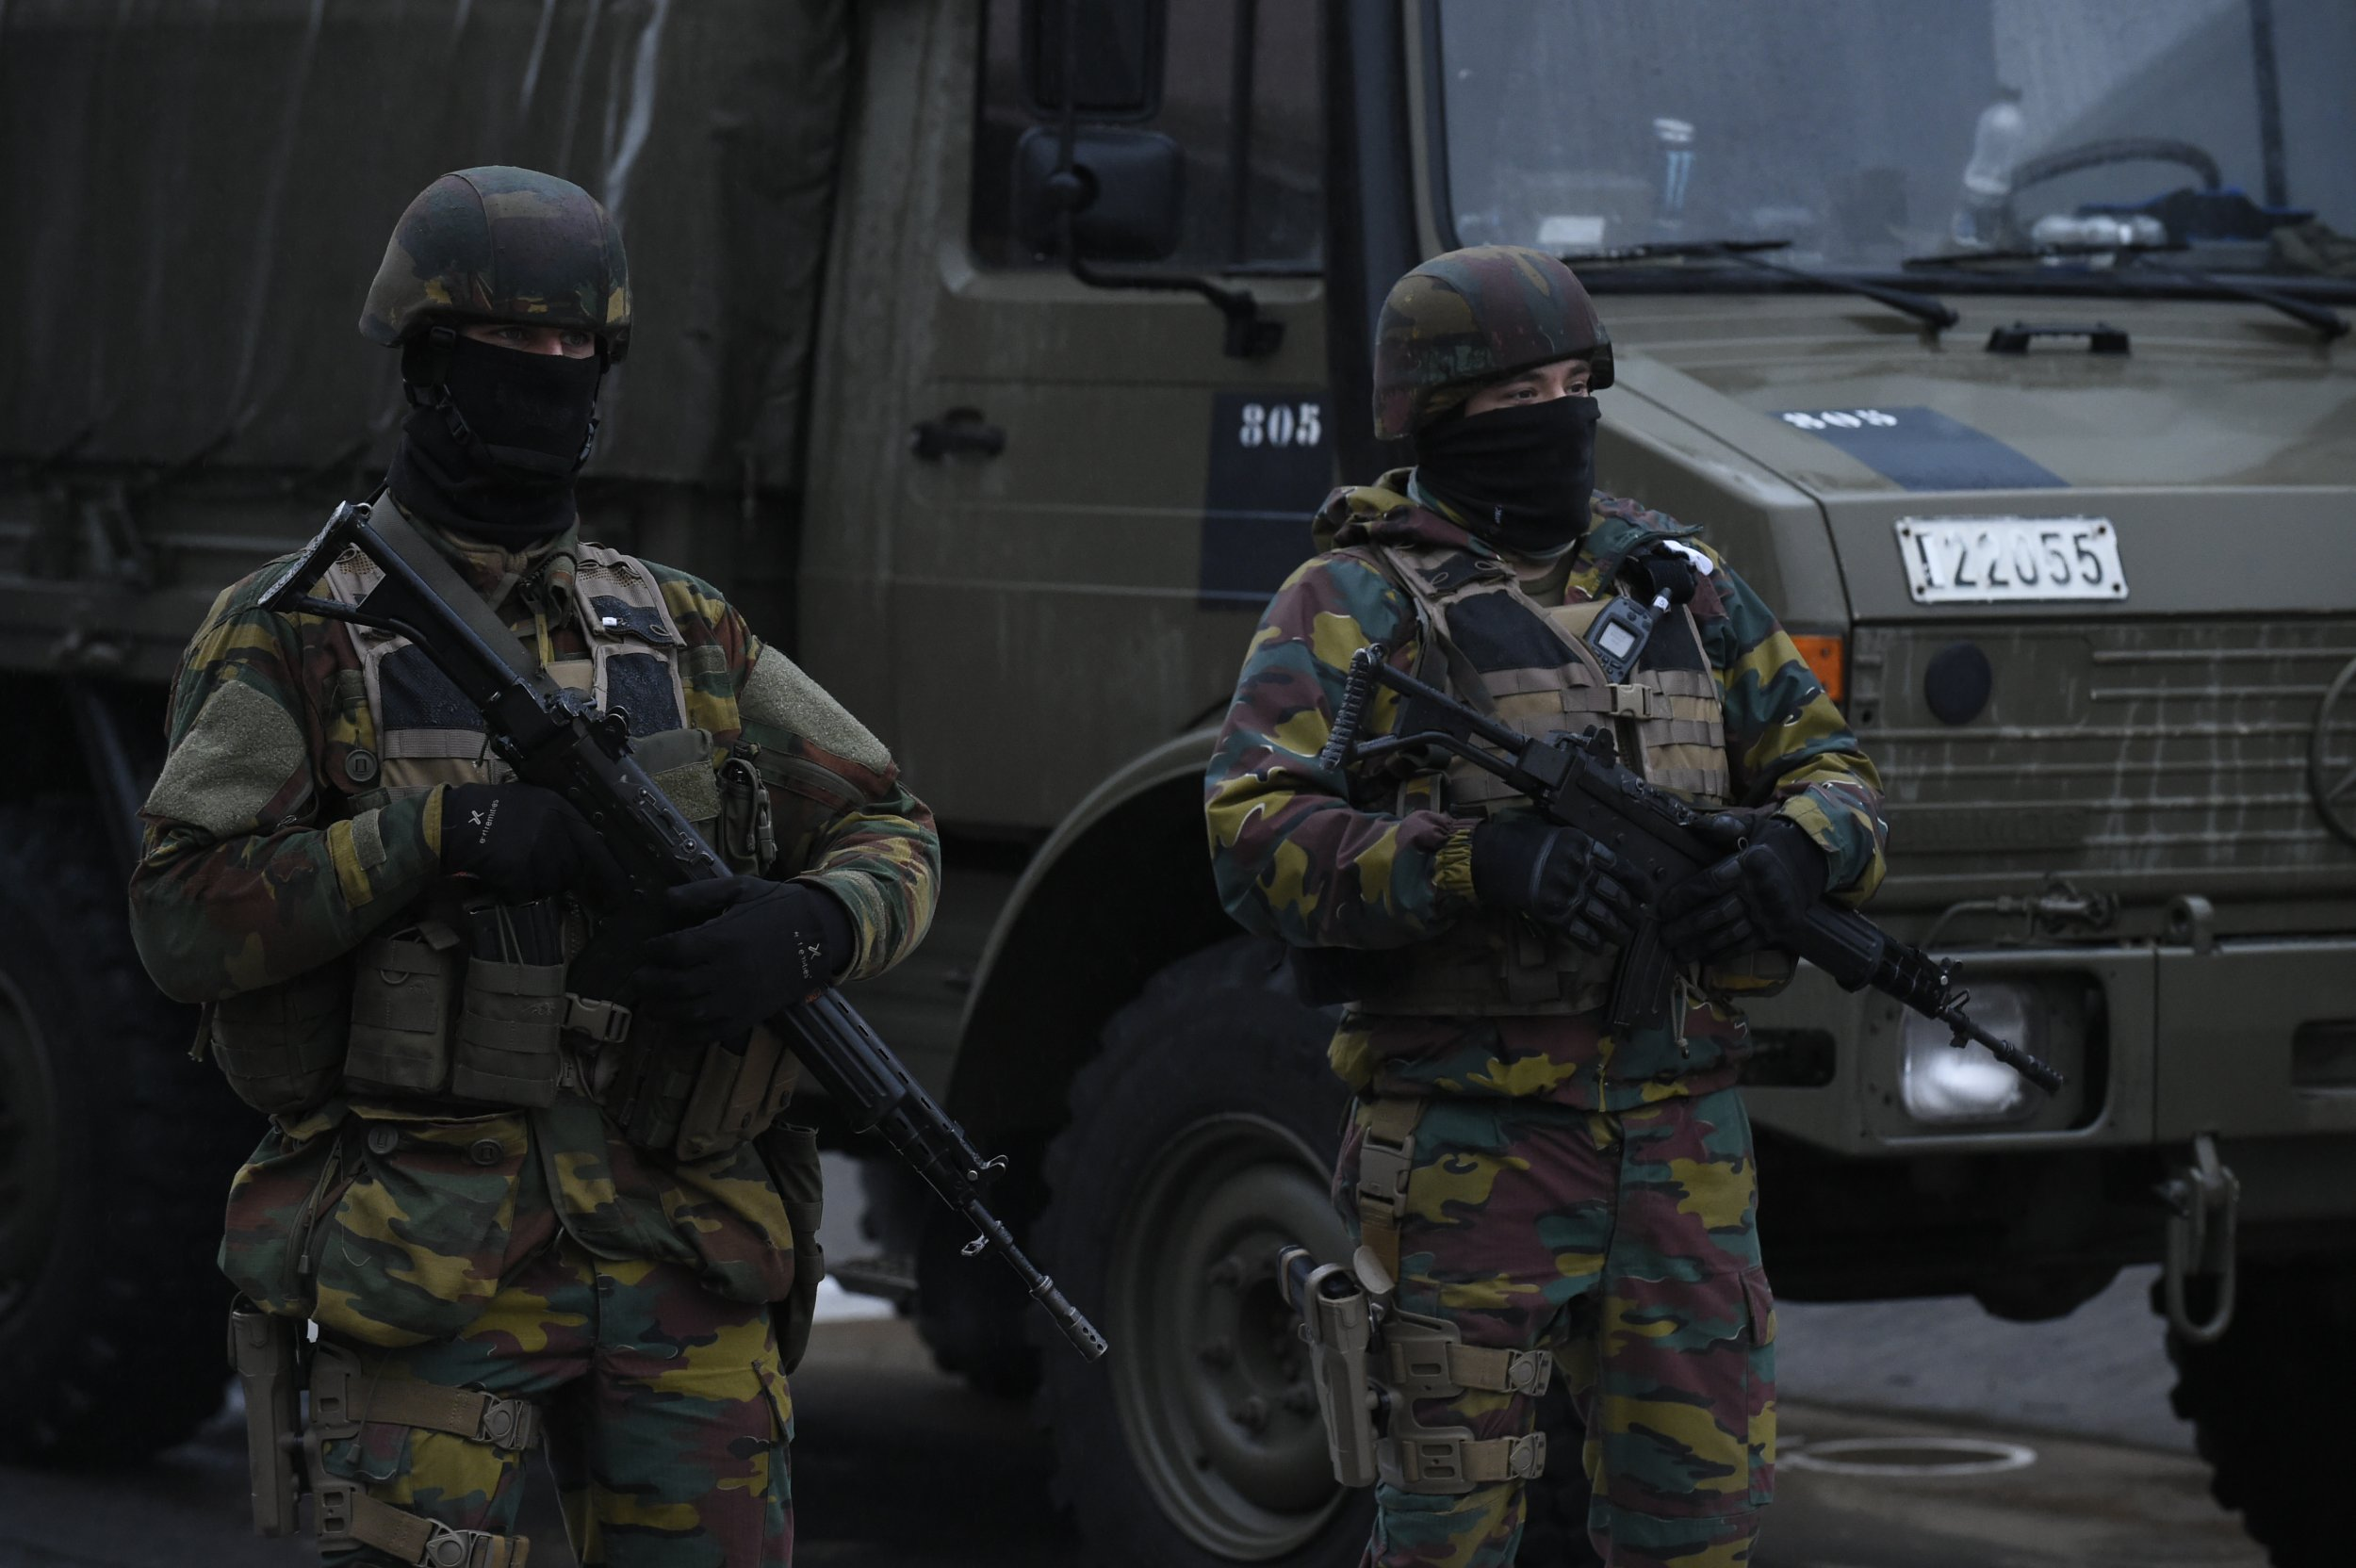 Belgian soldiers near Brussels airport in Zaventem, March 23, 2016.